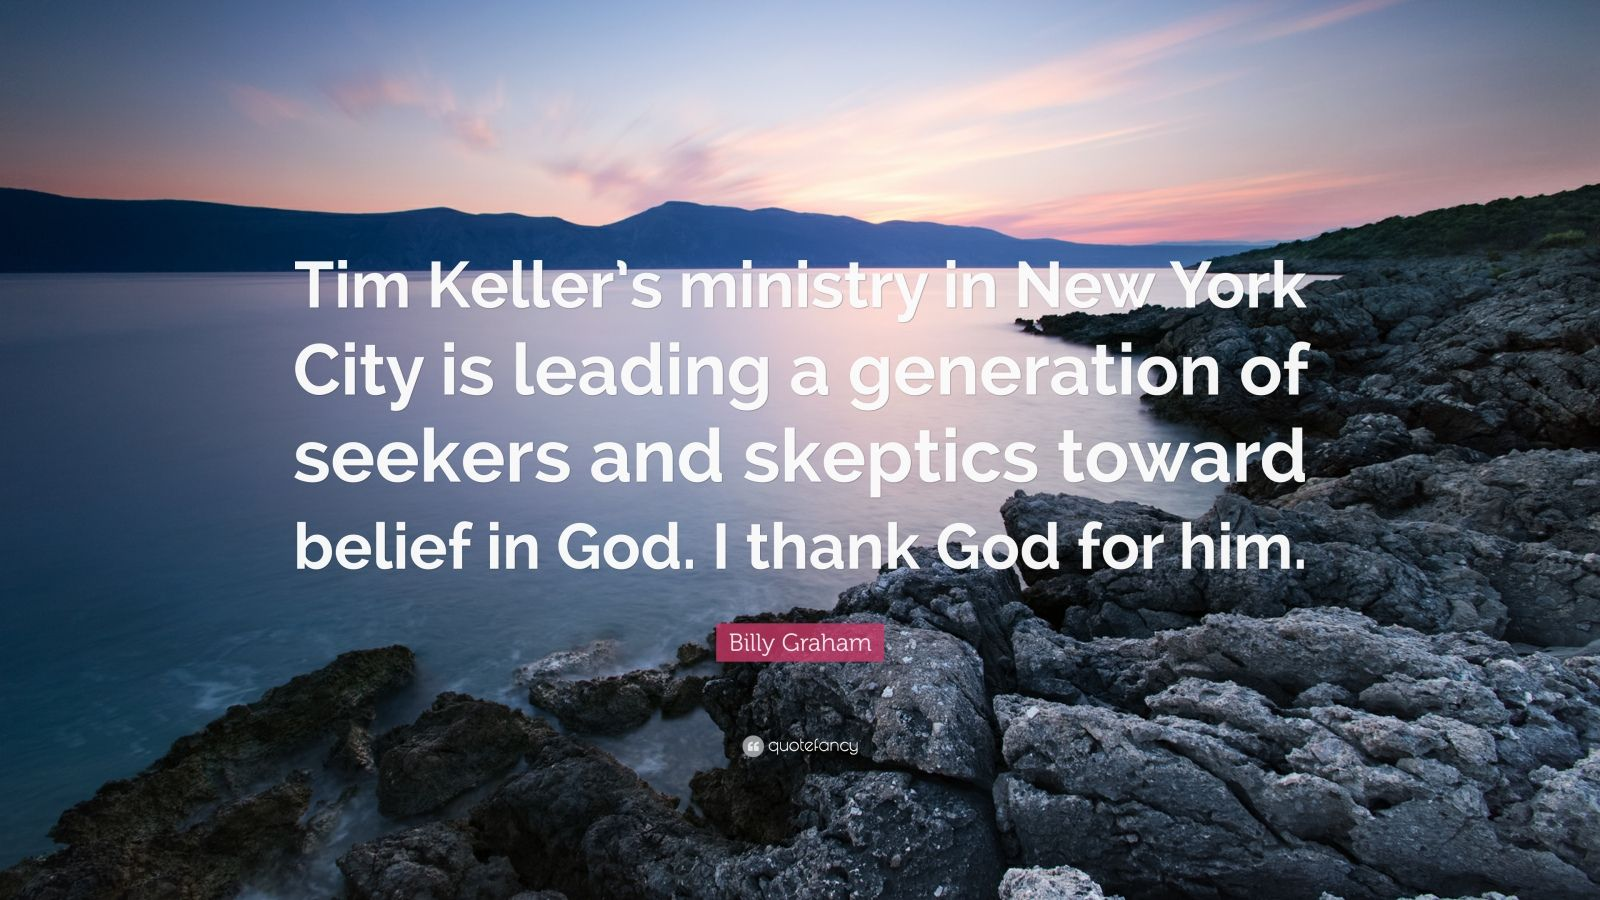 """Billy Graham Quote: """"Tim Keller's ministry in New York City is leading a generation of seekers and skeptics toward belief in God. I thank God for him."""""""